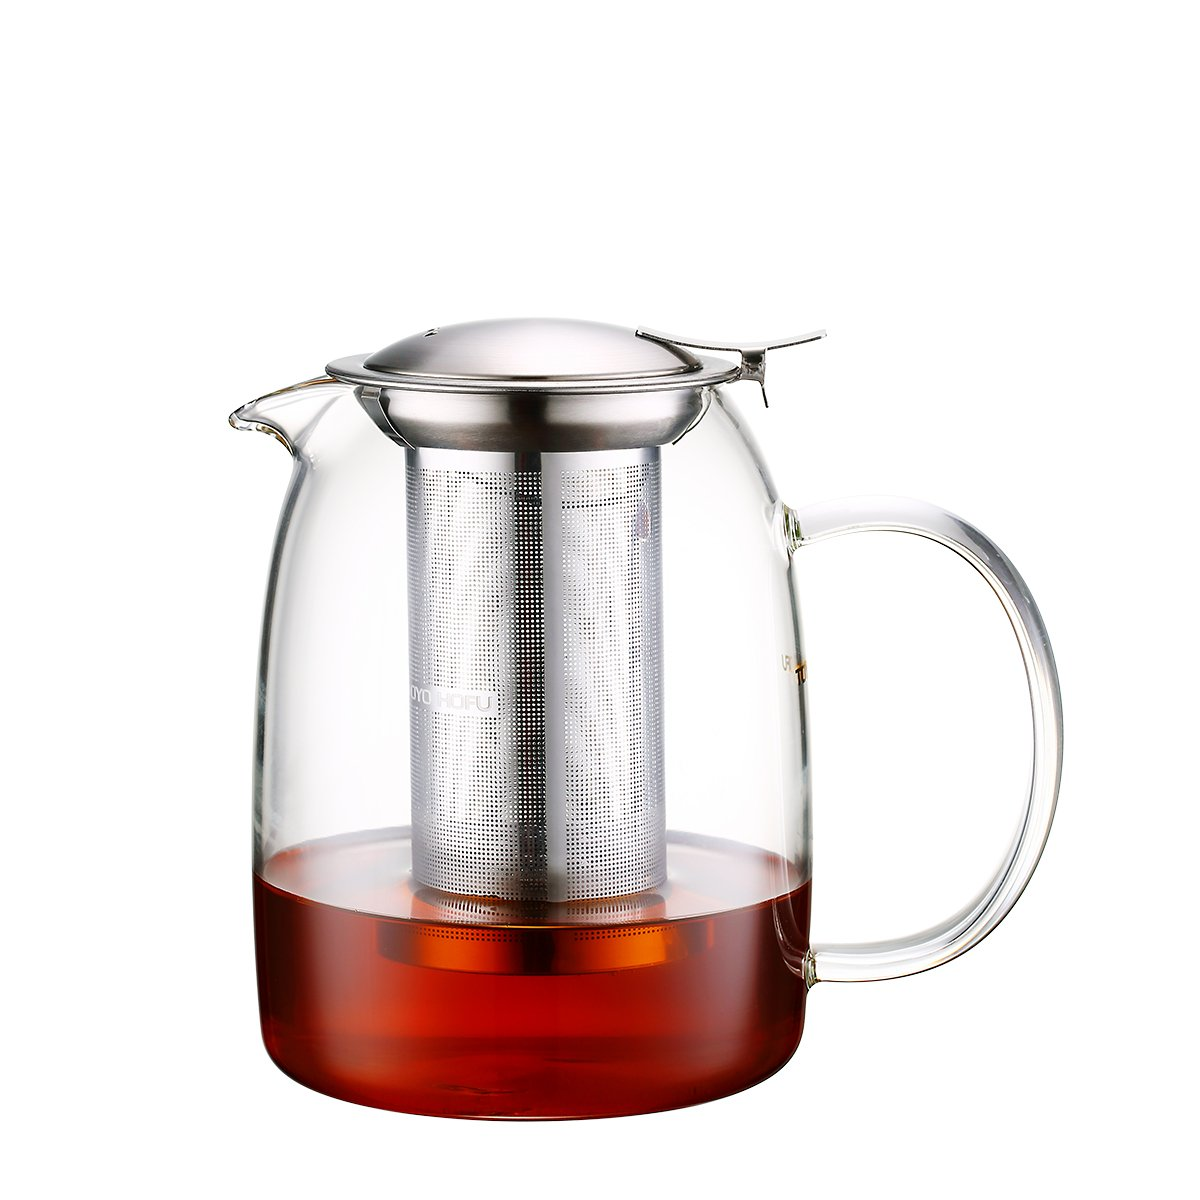 Toyo Hofu Clear Glass Teapot with Infuser, High Borosilicate Glass Teapot with Removable 304 Stainless Steel Infuser,Stovetop Safe, (1100ml/37oz)